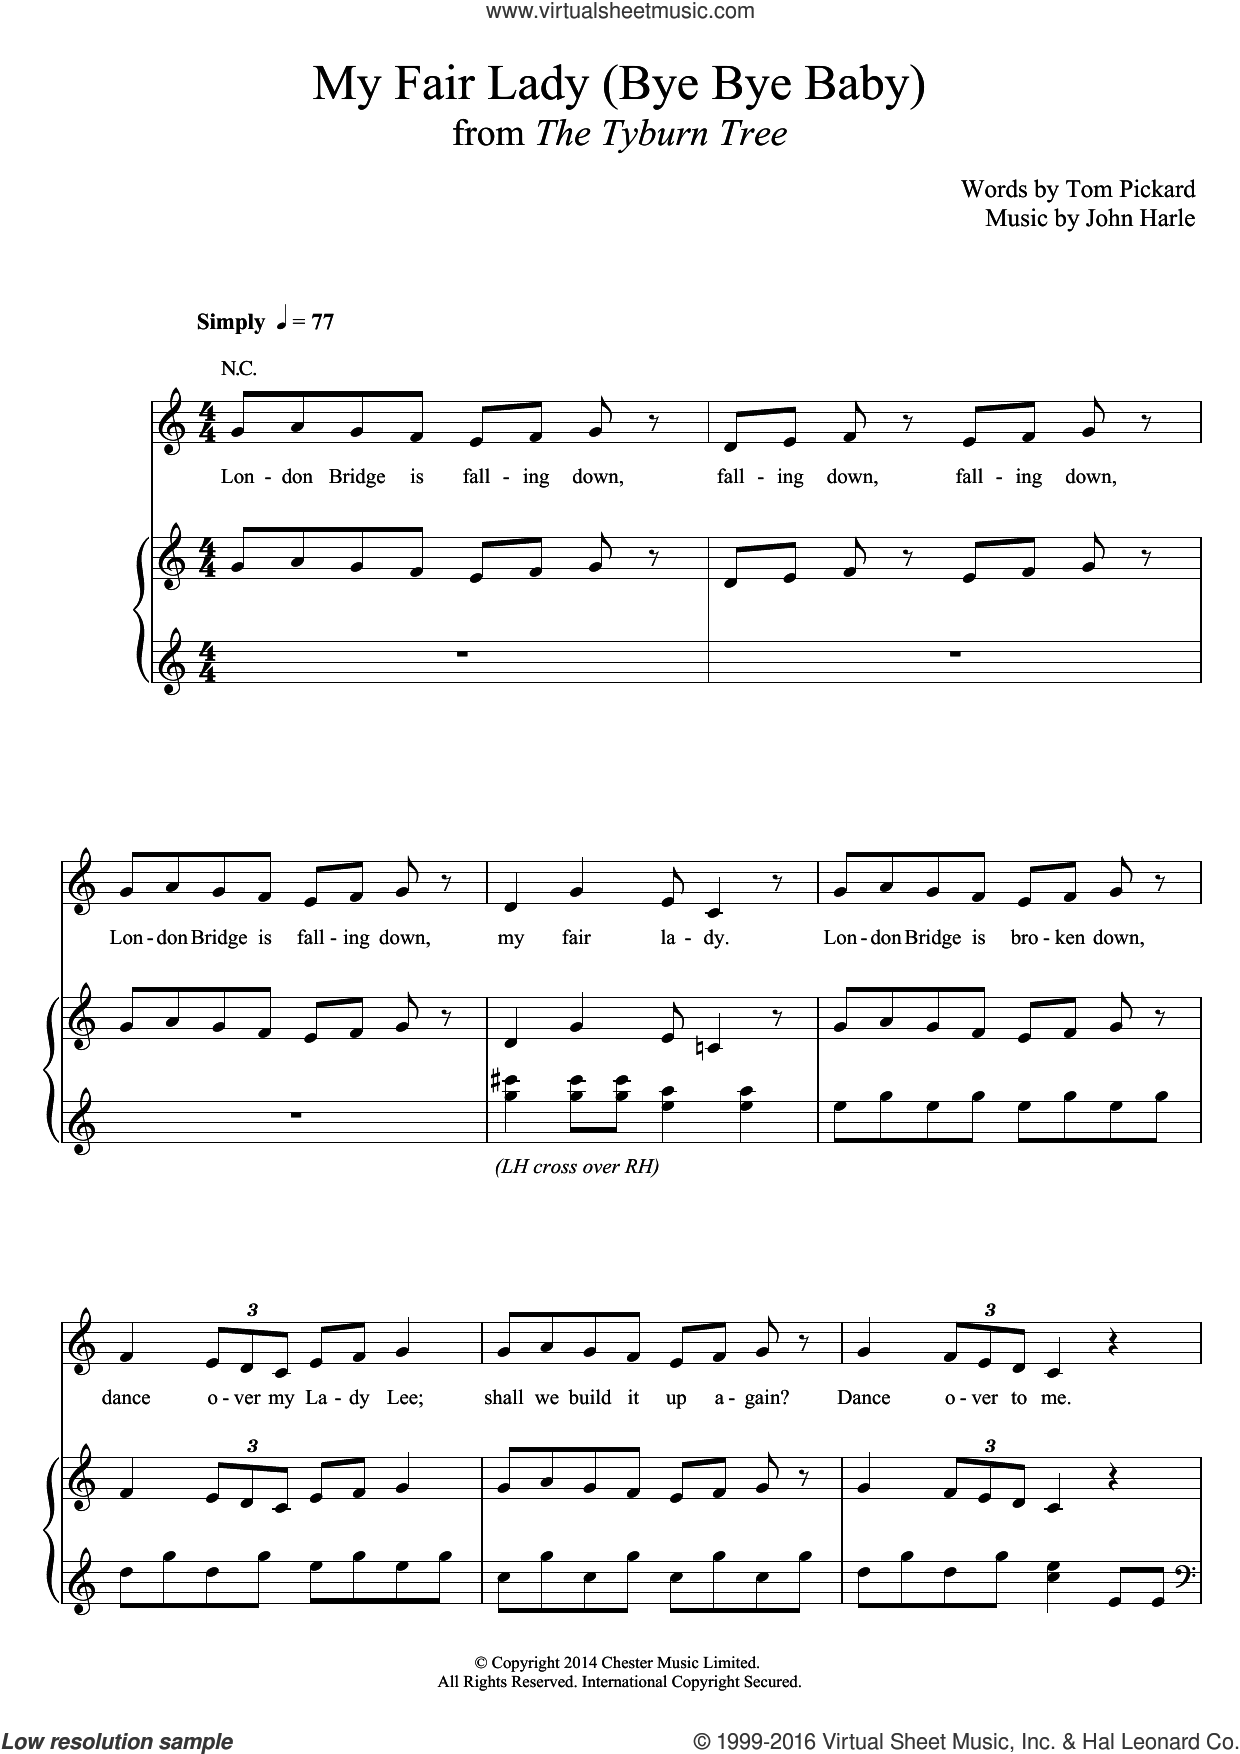 My Fair Lady (Bye Bye Baby) sheet music for voice, piano or guitar by Tom Pickard and John Harle. Score Image Preview.